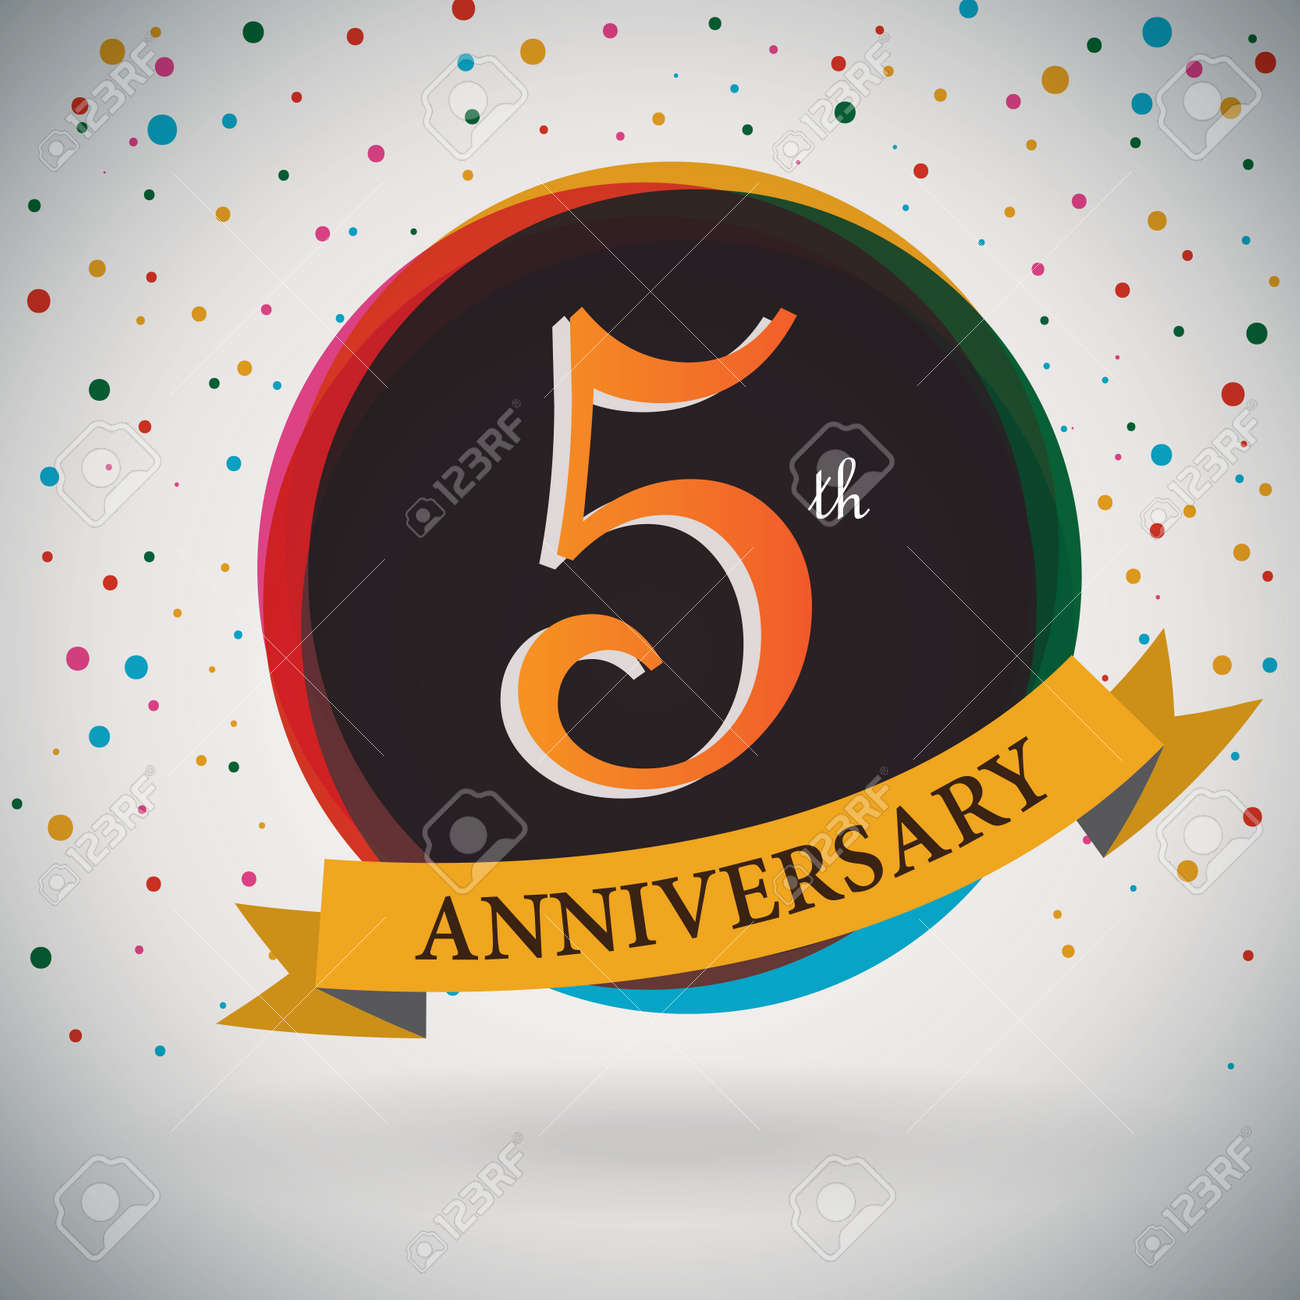 Wedding anniversary 5 years stock photos royalty free business images 5th anniversary poster template design in retro style vector background illustration biocorpaavc